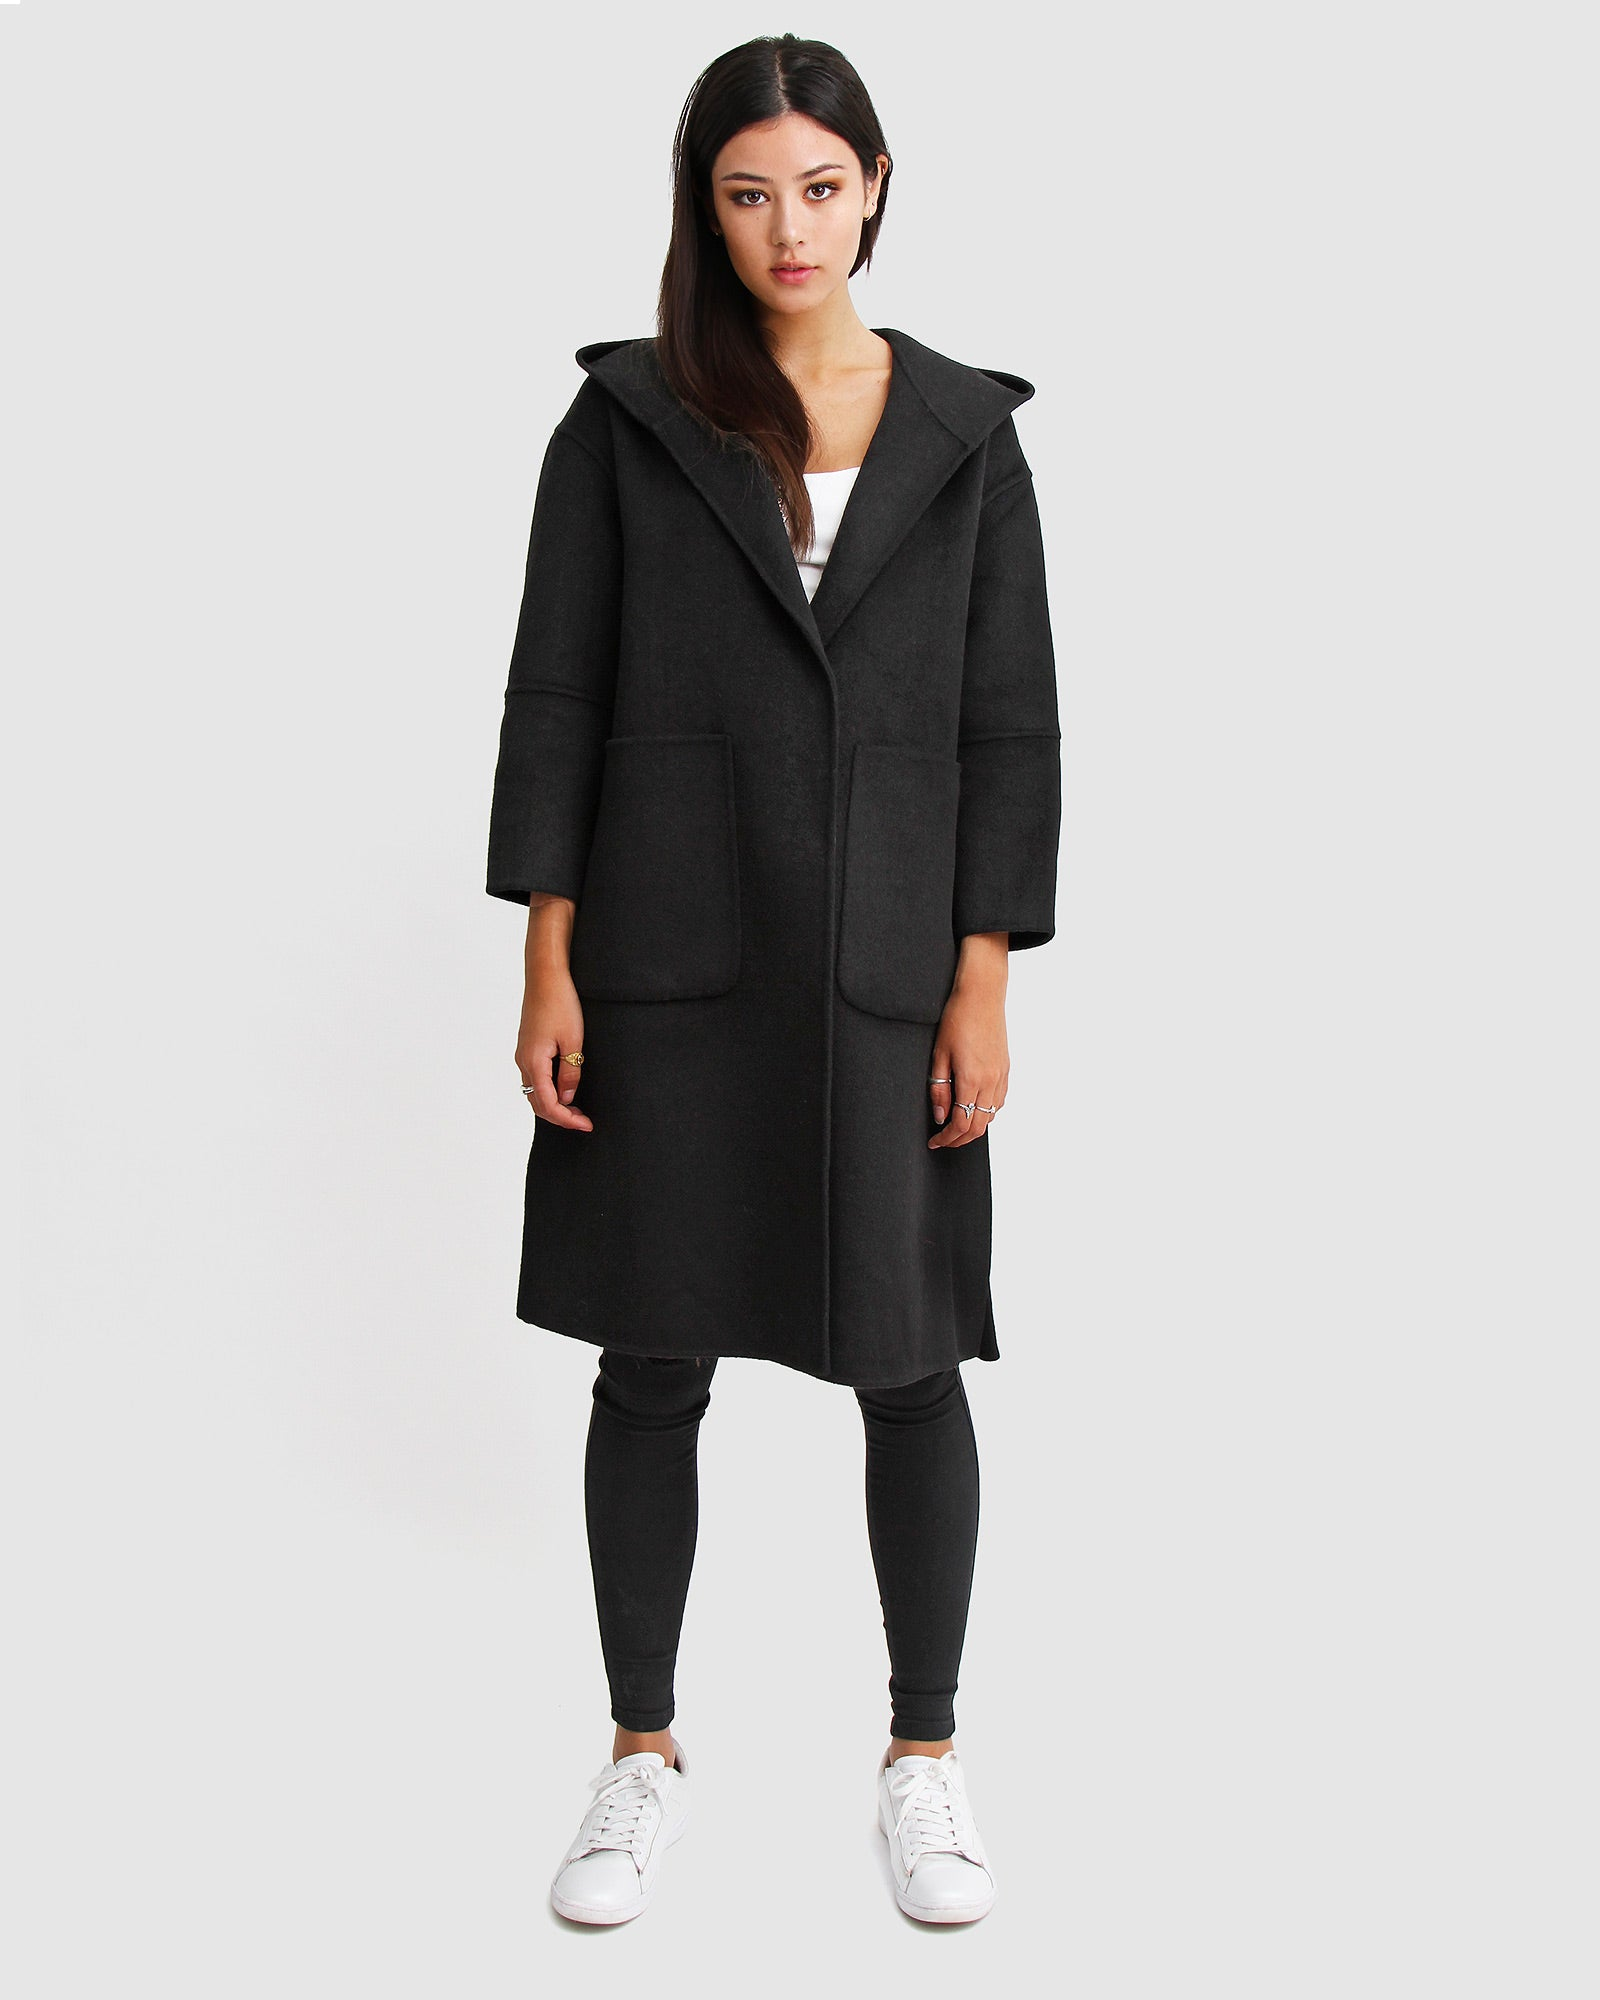 Walk This Way Wool Blend Oversized Coat - Black